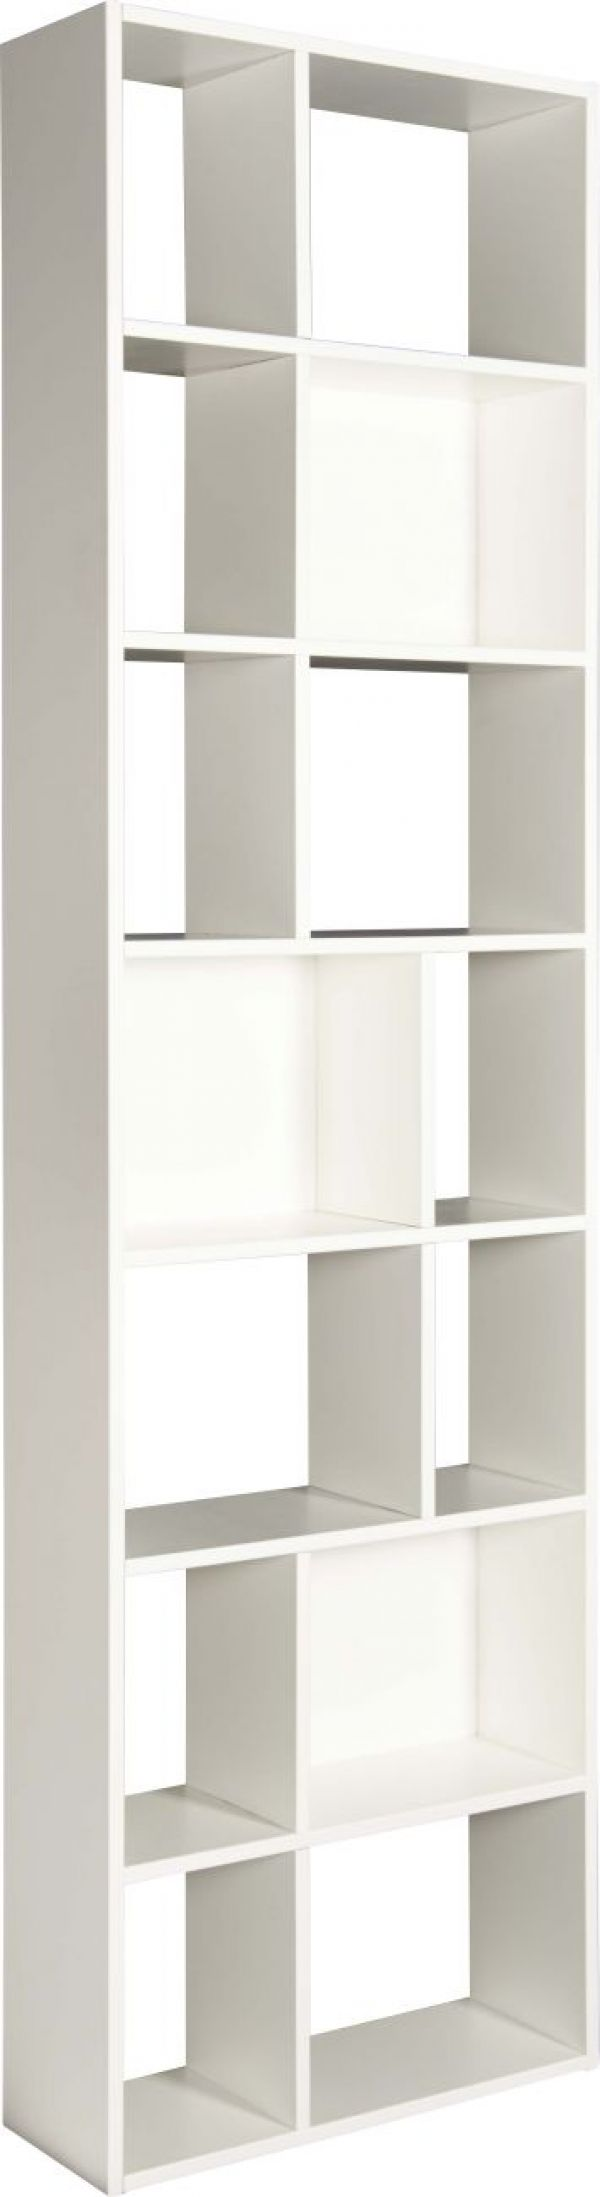 128 etagere murale profondeur 30 cm etagere bois. Black Bedroom Furniture Sets. Home Design Ideas